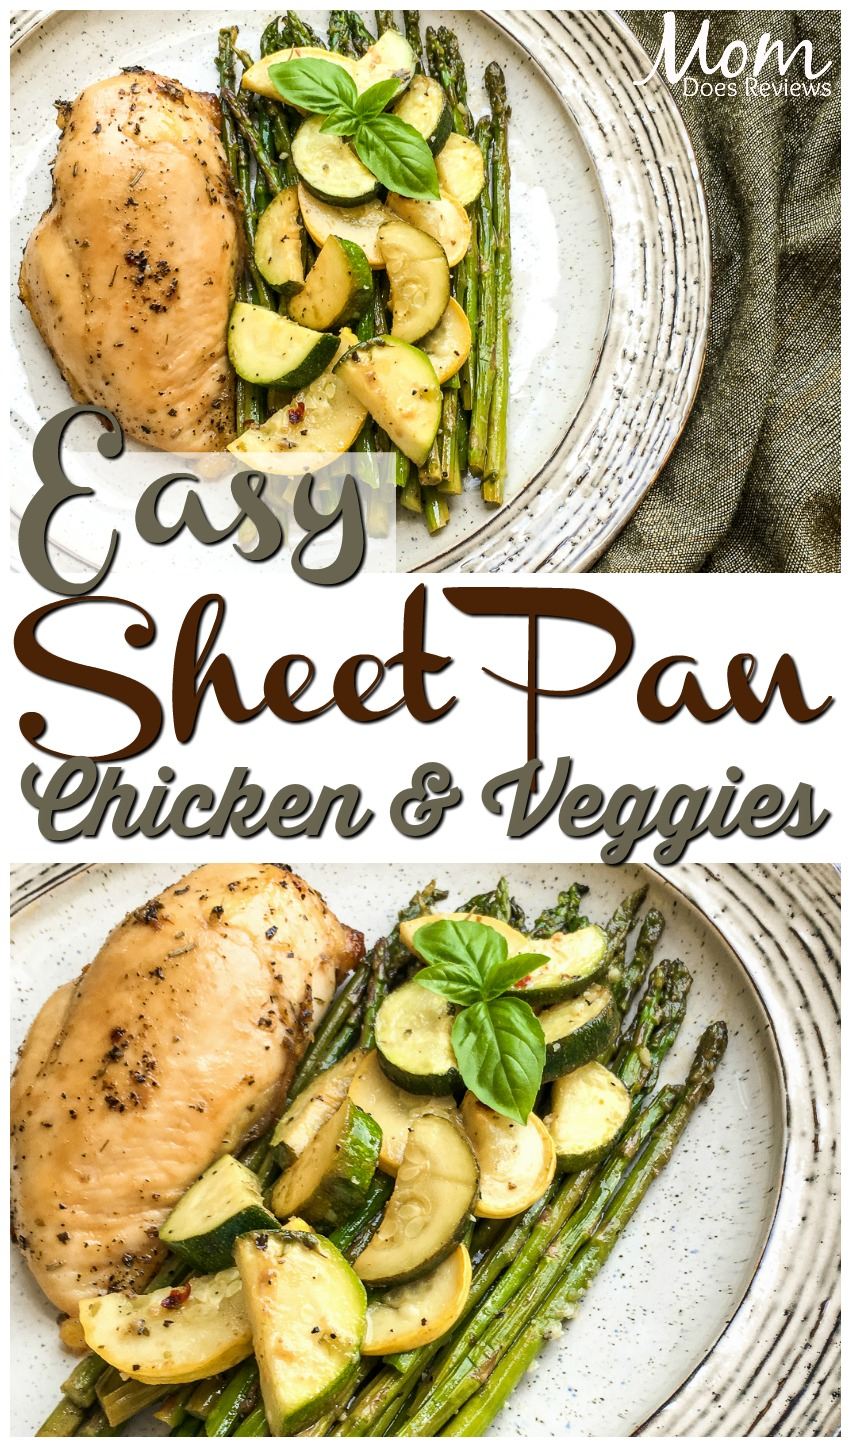 Easy Sheet Pan Roasted Veggies and Chicken Breast #easyrecipes #chicken #foodie